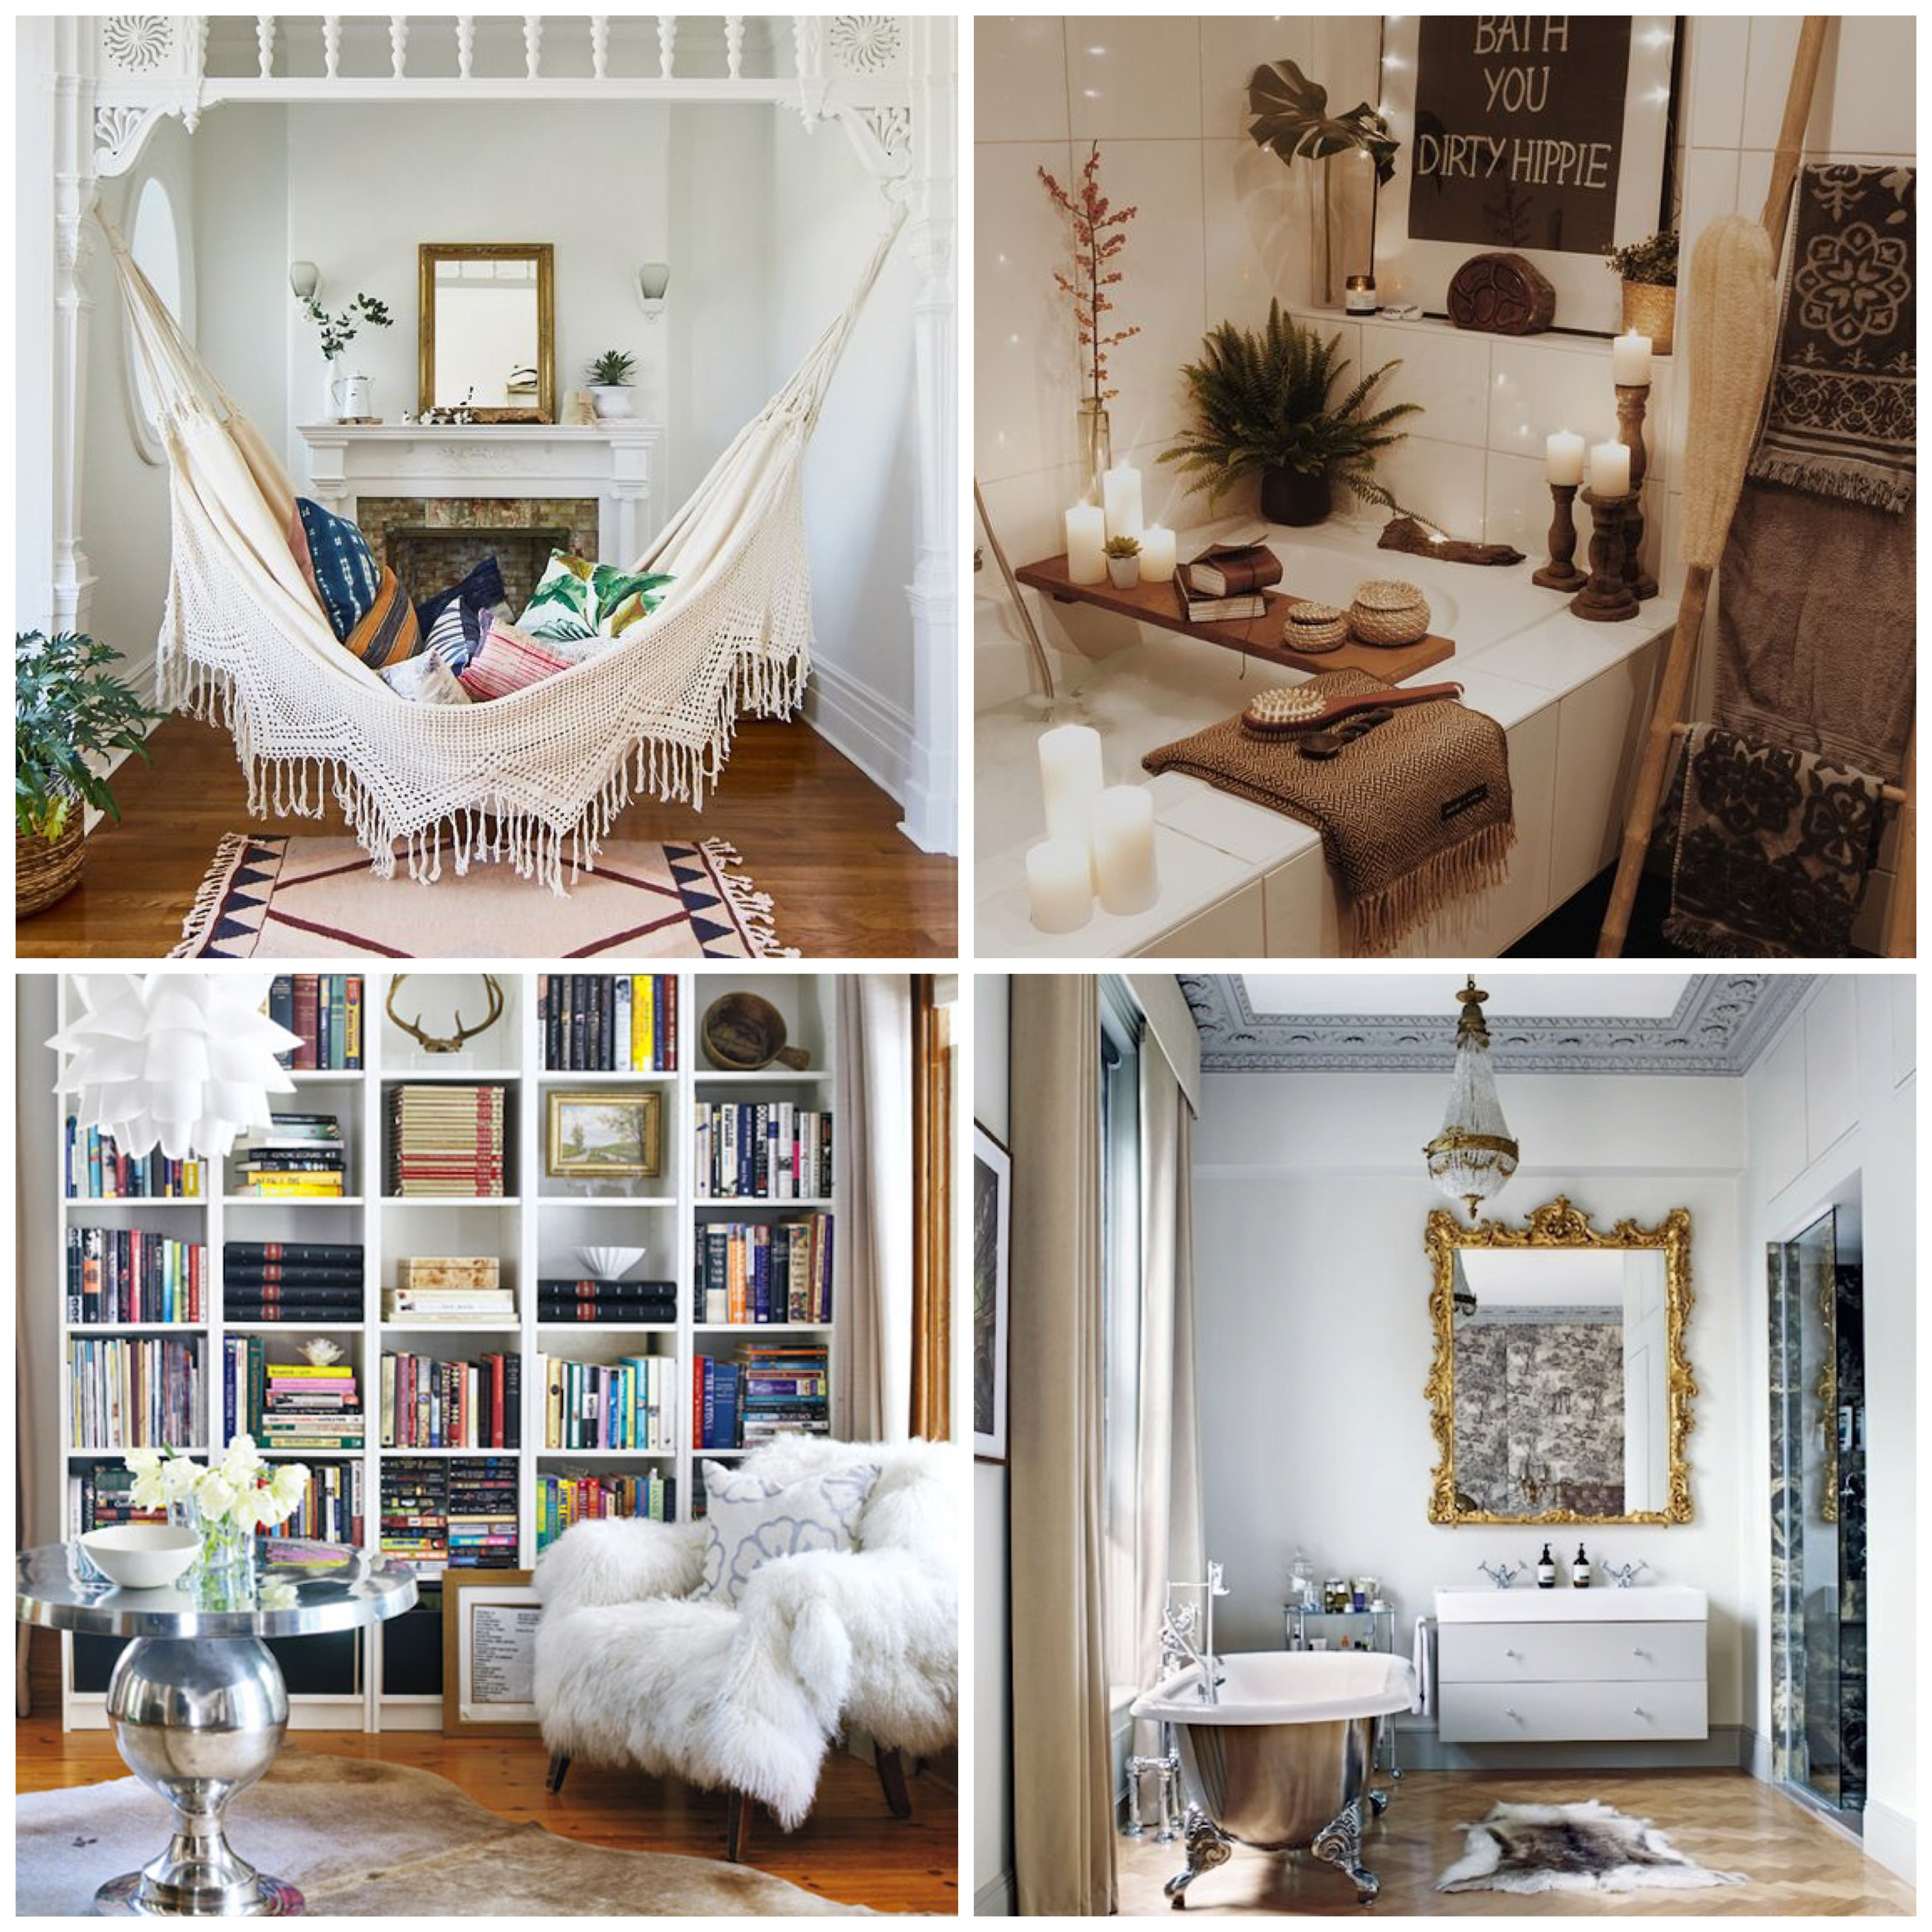 Home decor inspiration